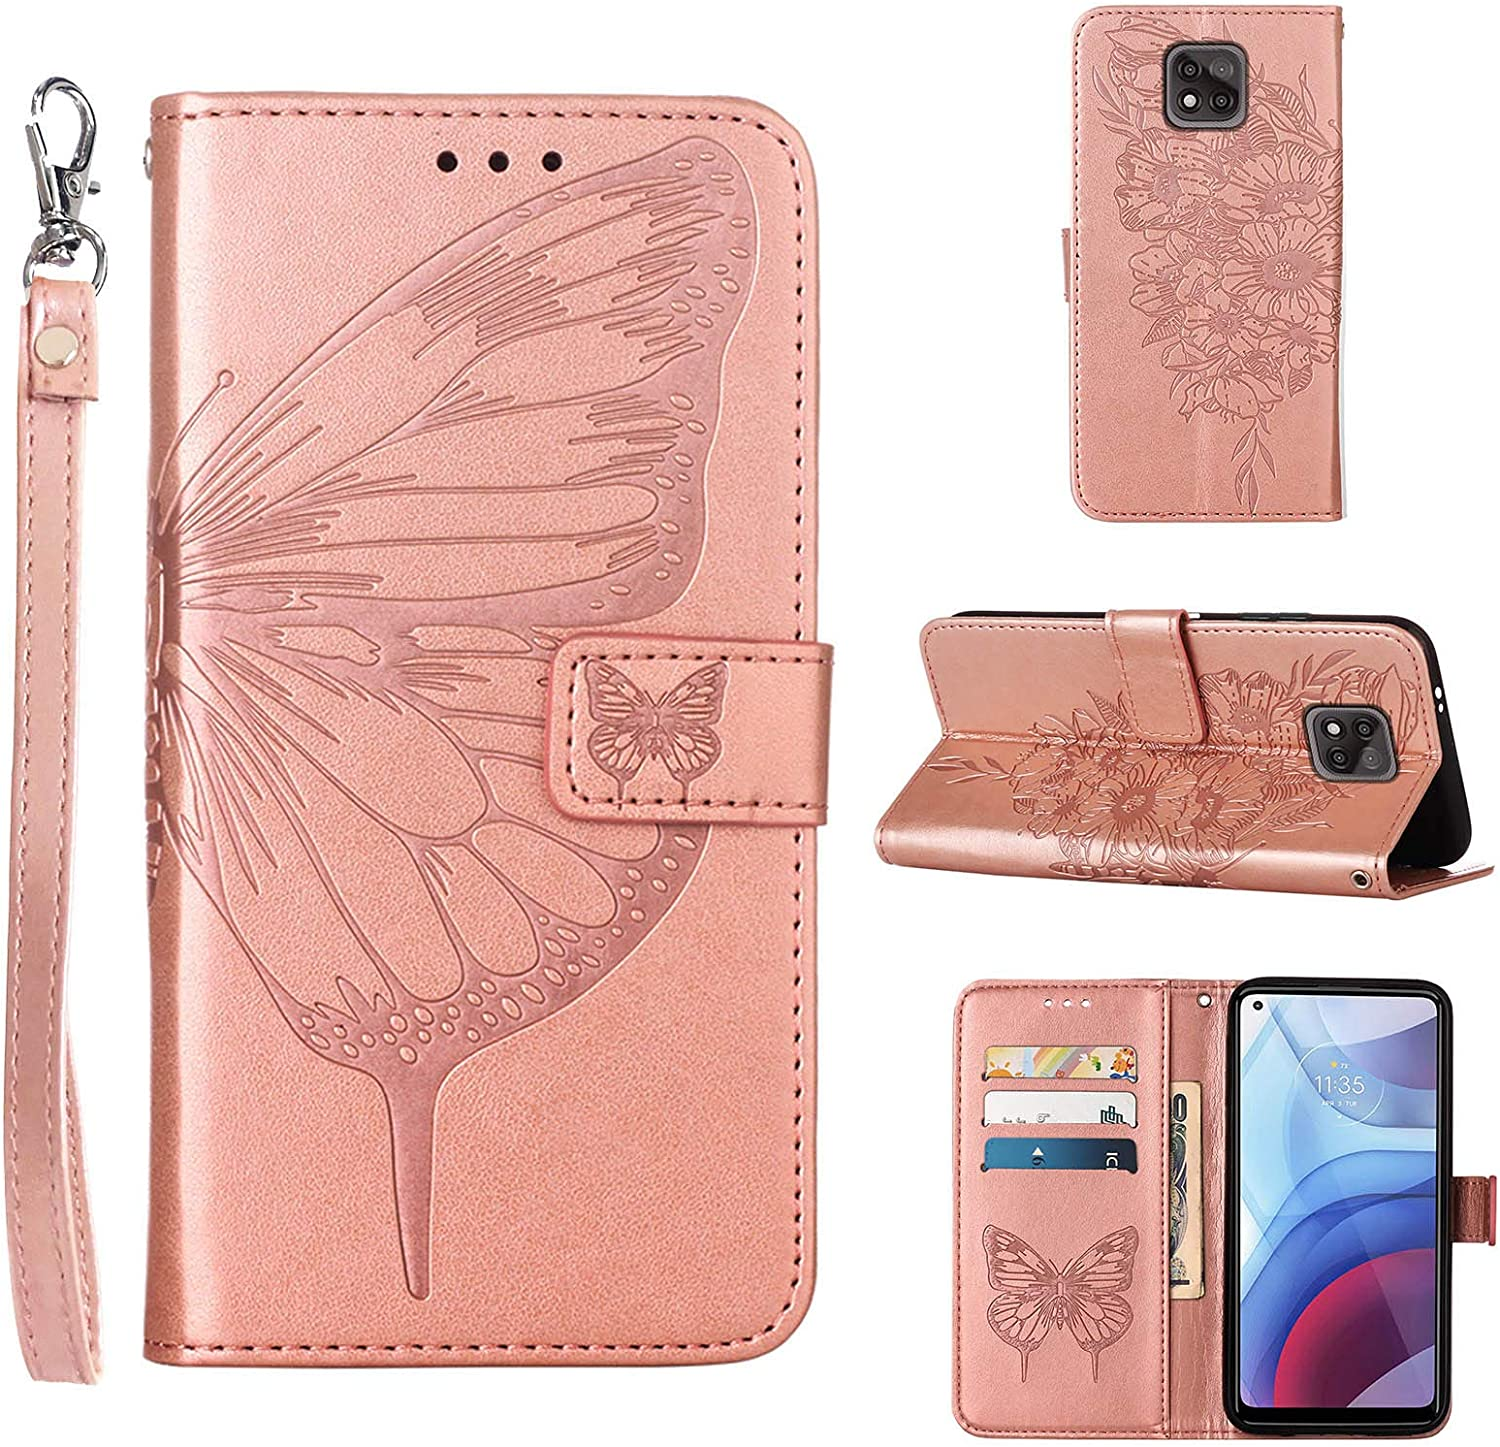 Compatible for Moto G Power 2021 Case Wallet,[Kickstand][Wrist Strap][Card Holder Slots] Butterfly Floral Embossed PU Leather Flip Protective Cover for Moto G Power (2021) Case (Rose Gold)